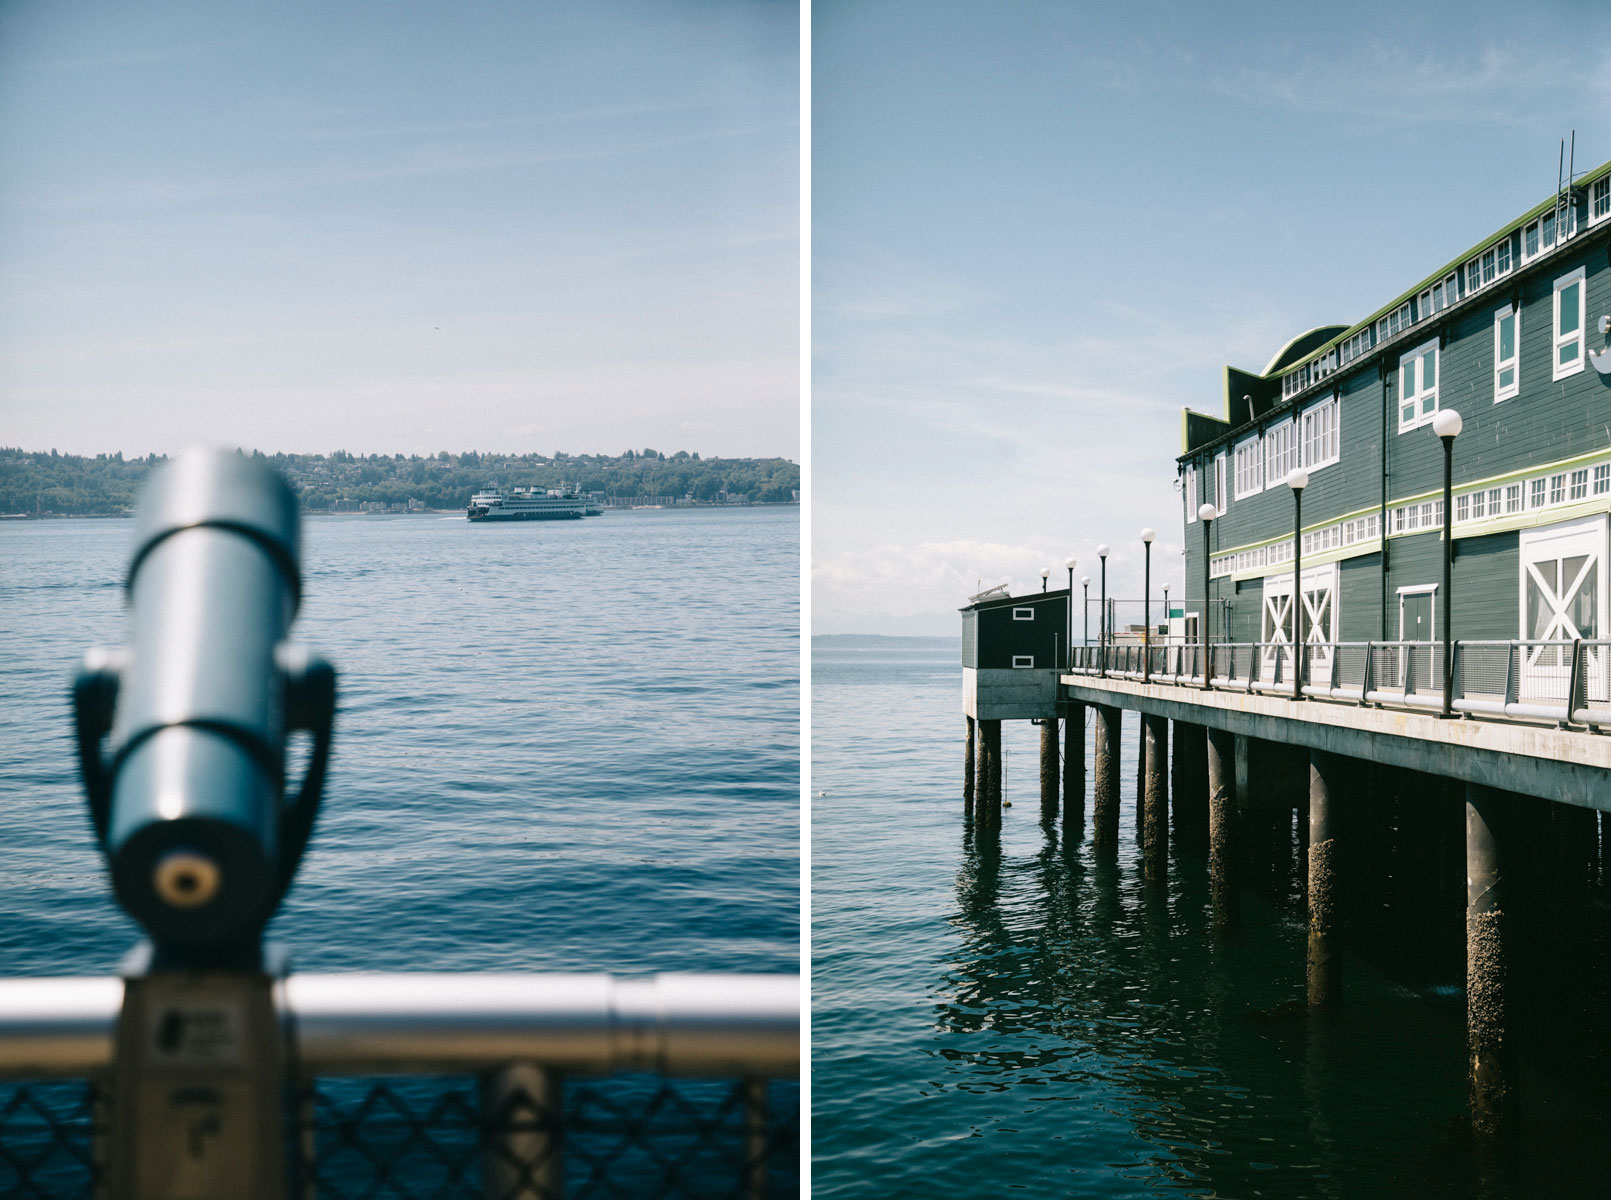 Les Ferries de Seattle depuis Waterfront